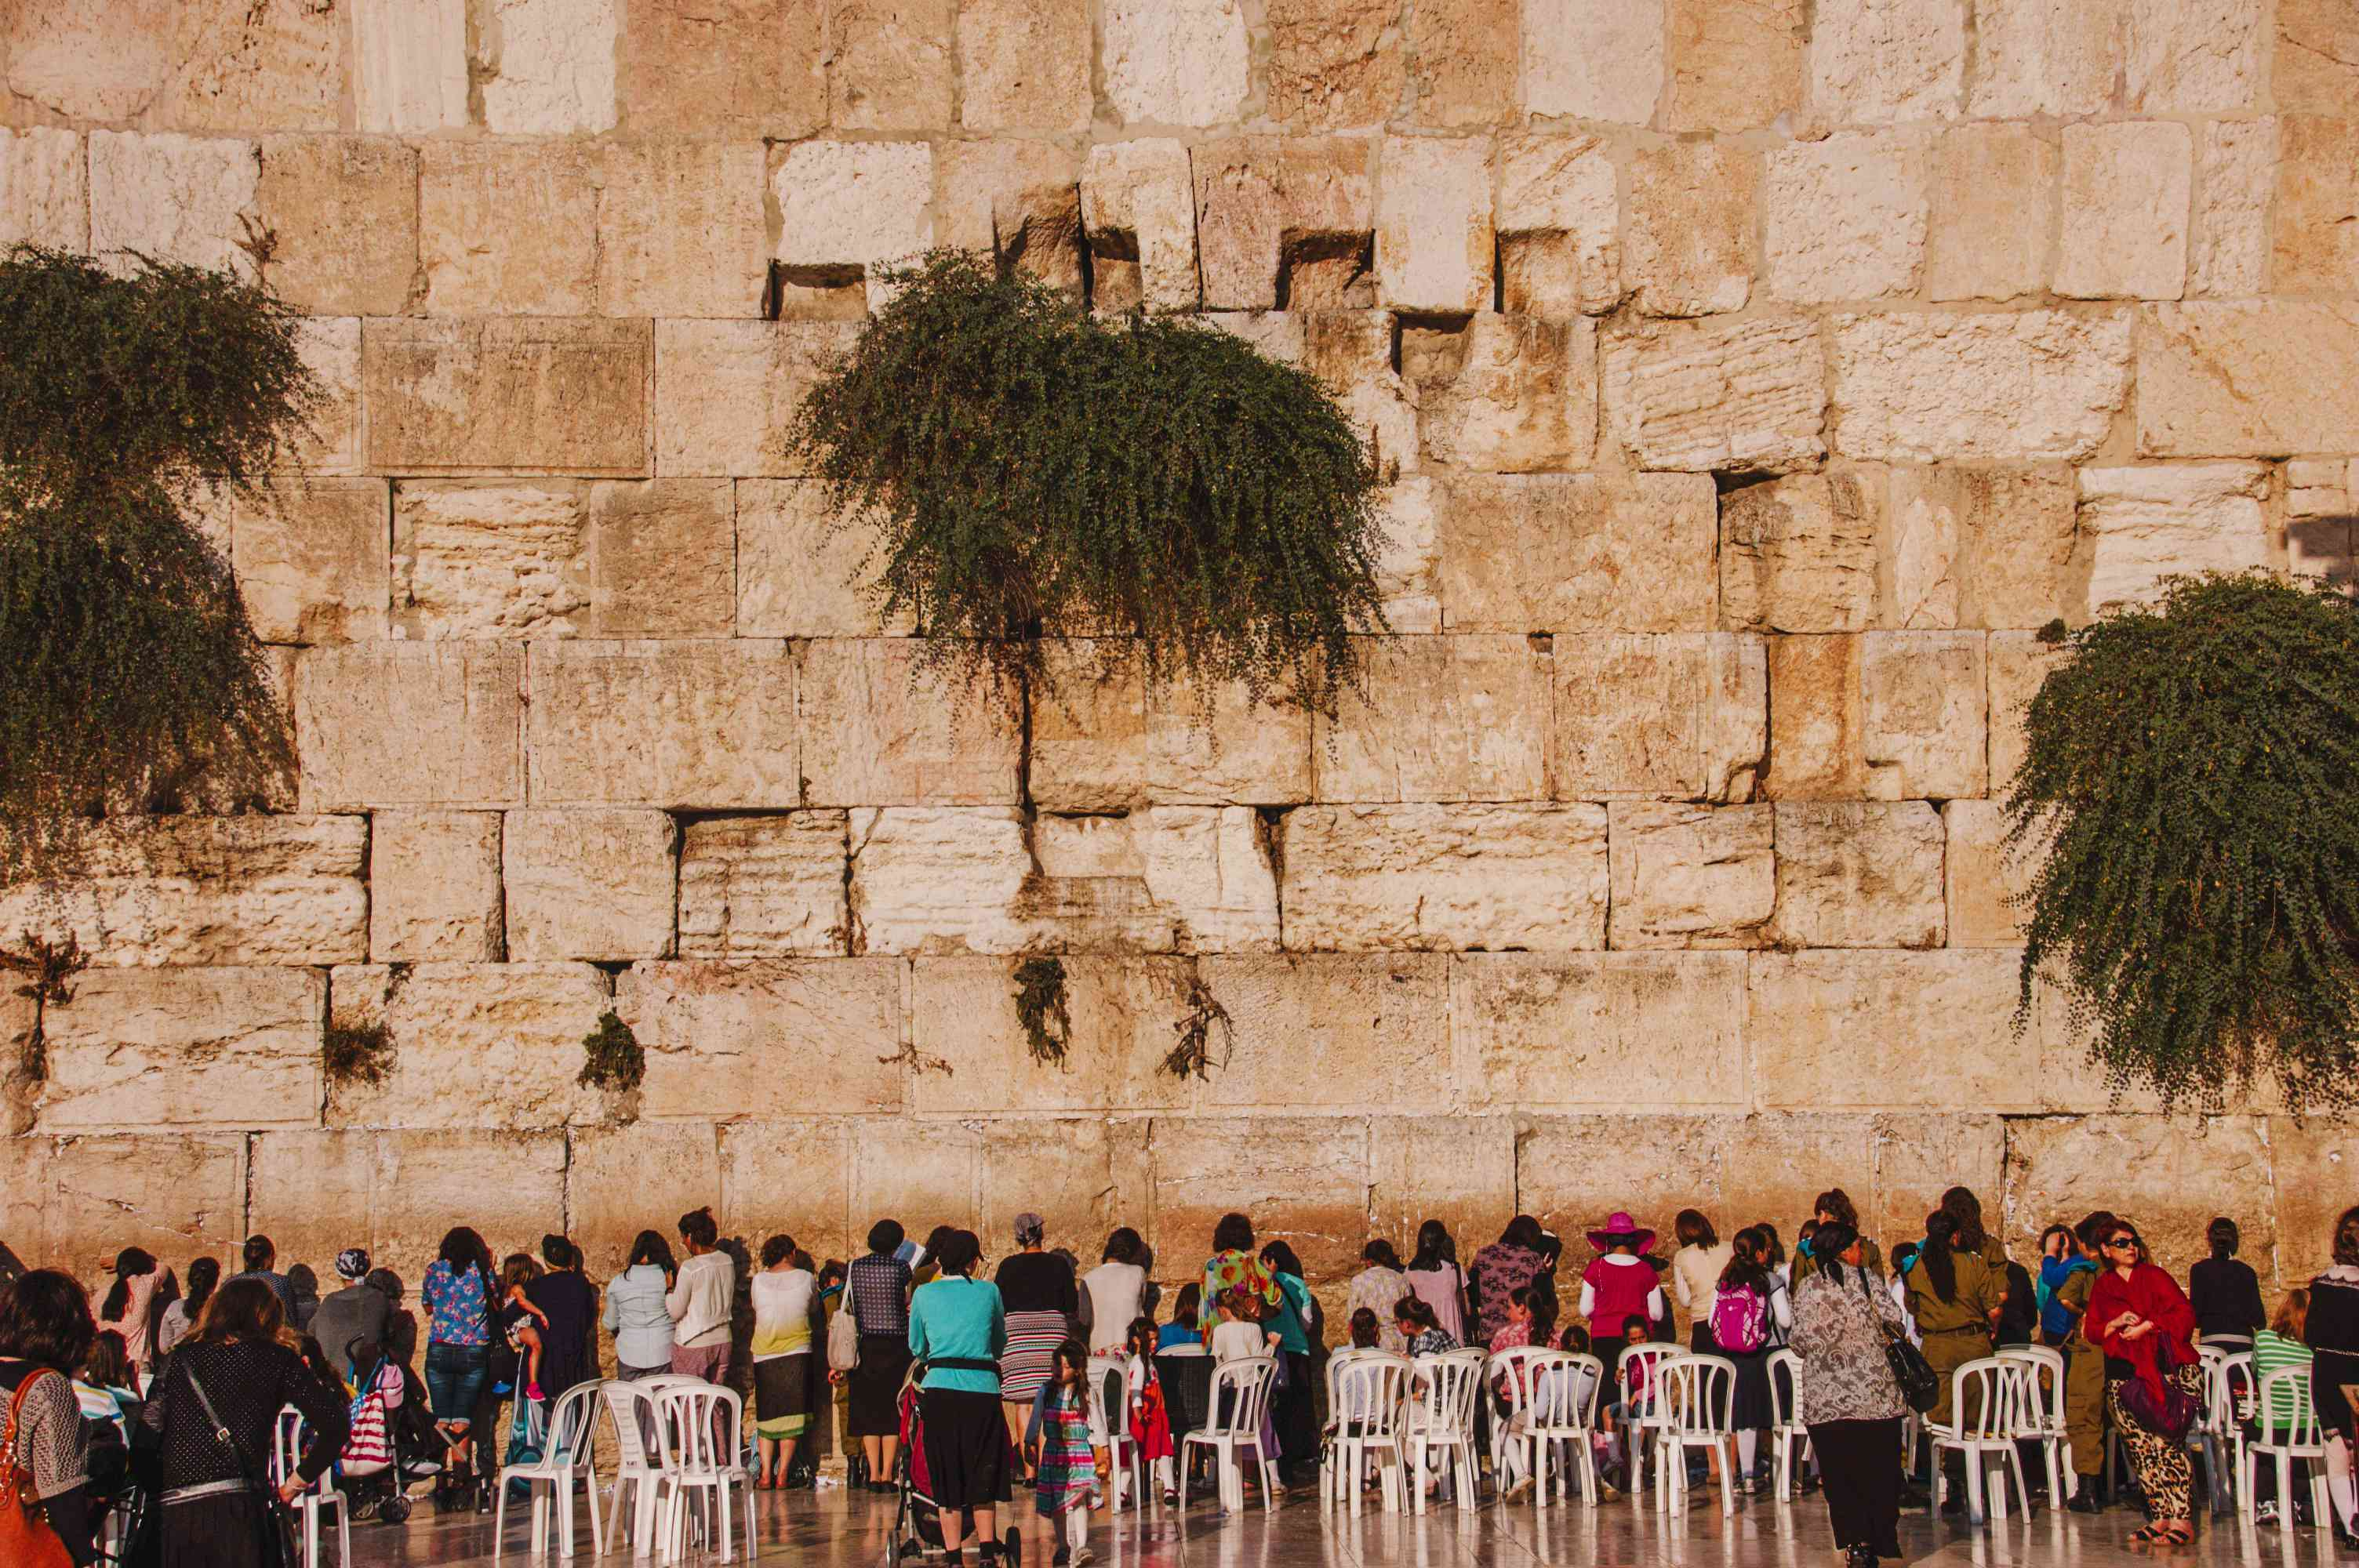 People standing at praying at the Western Wall